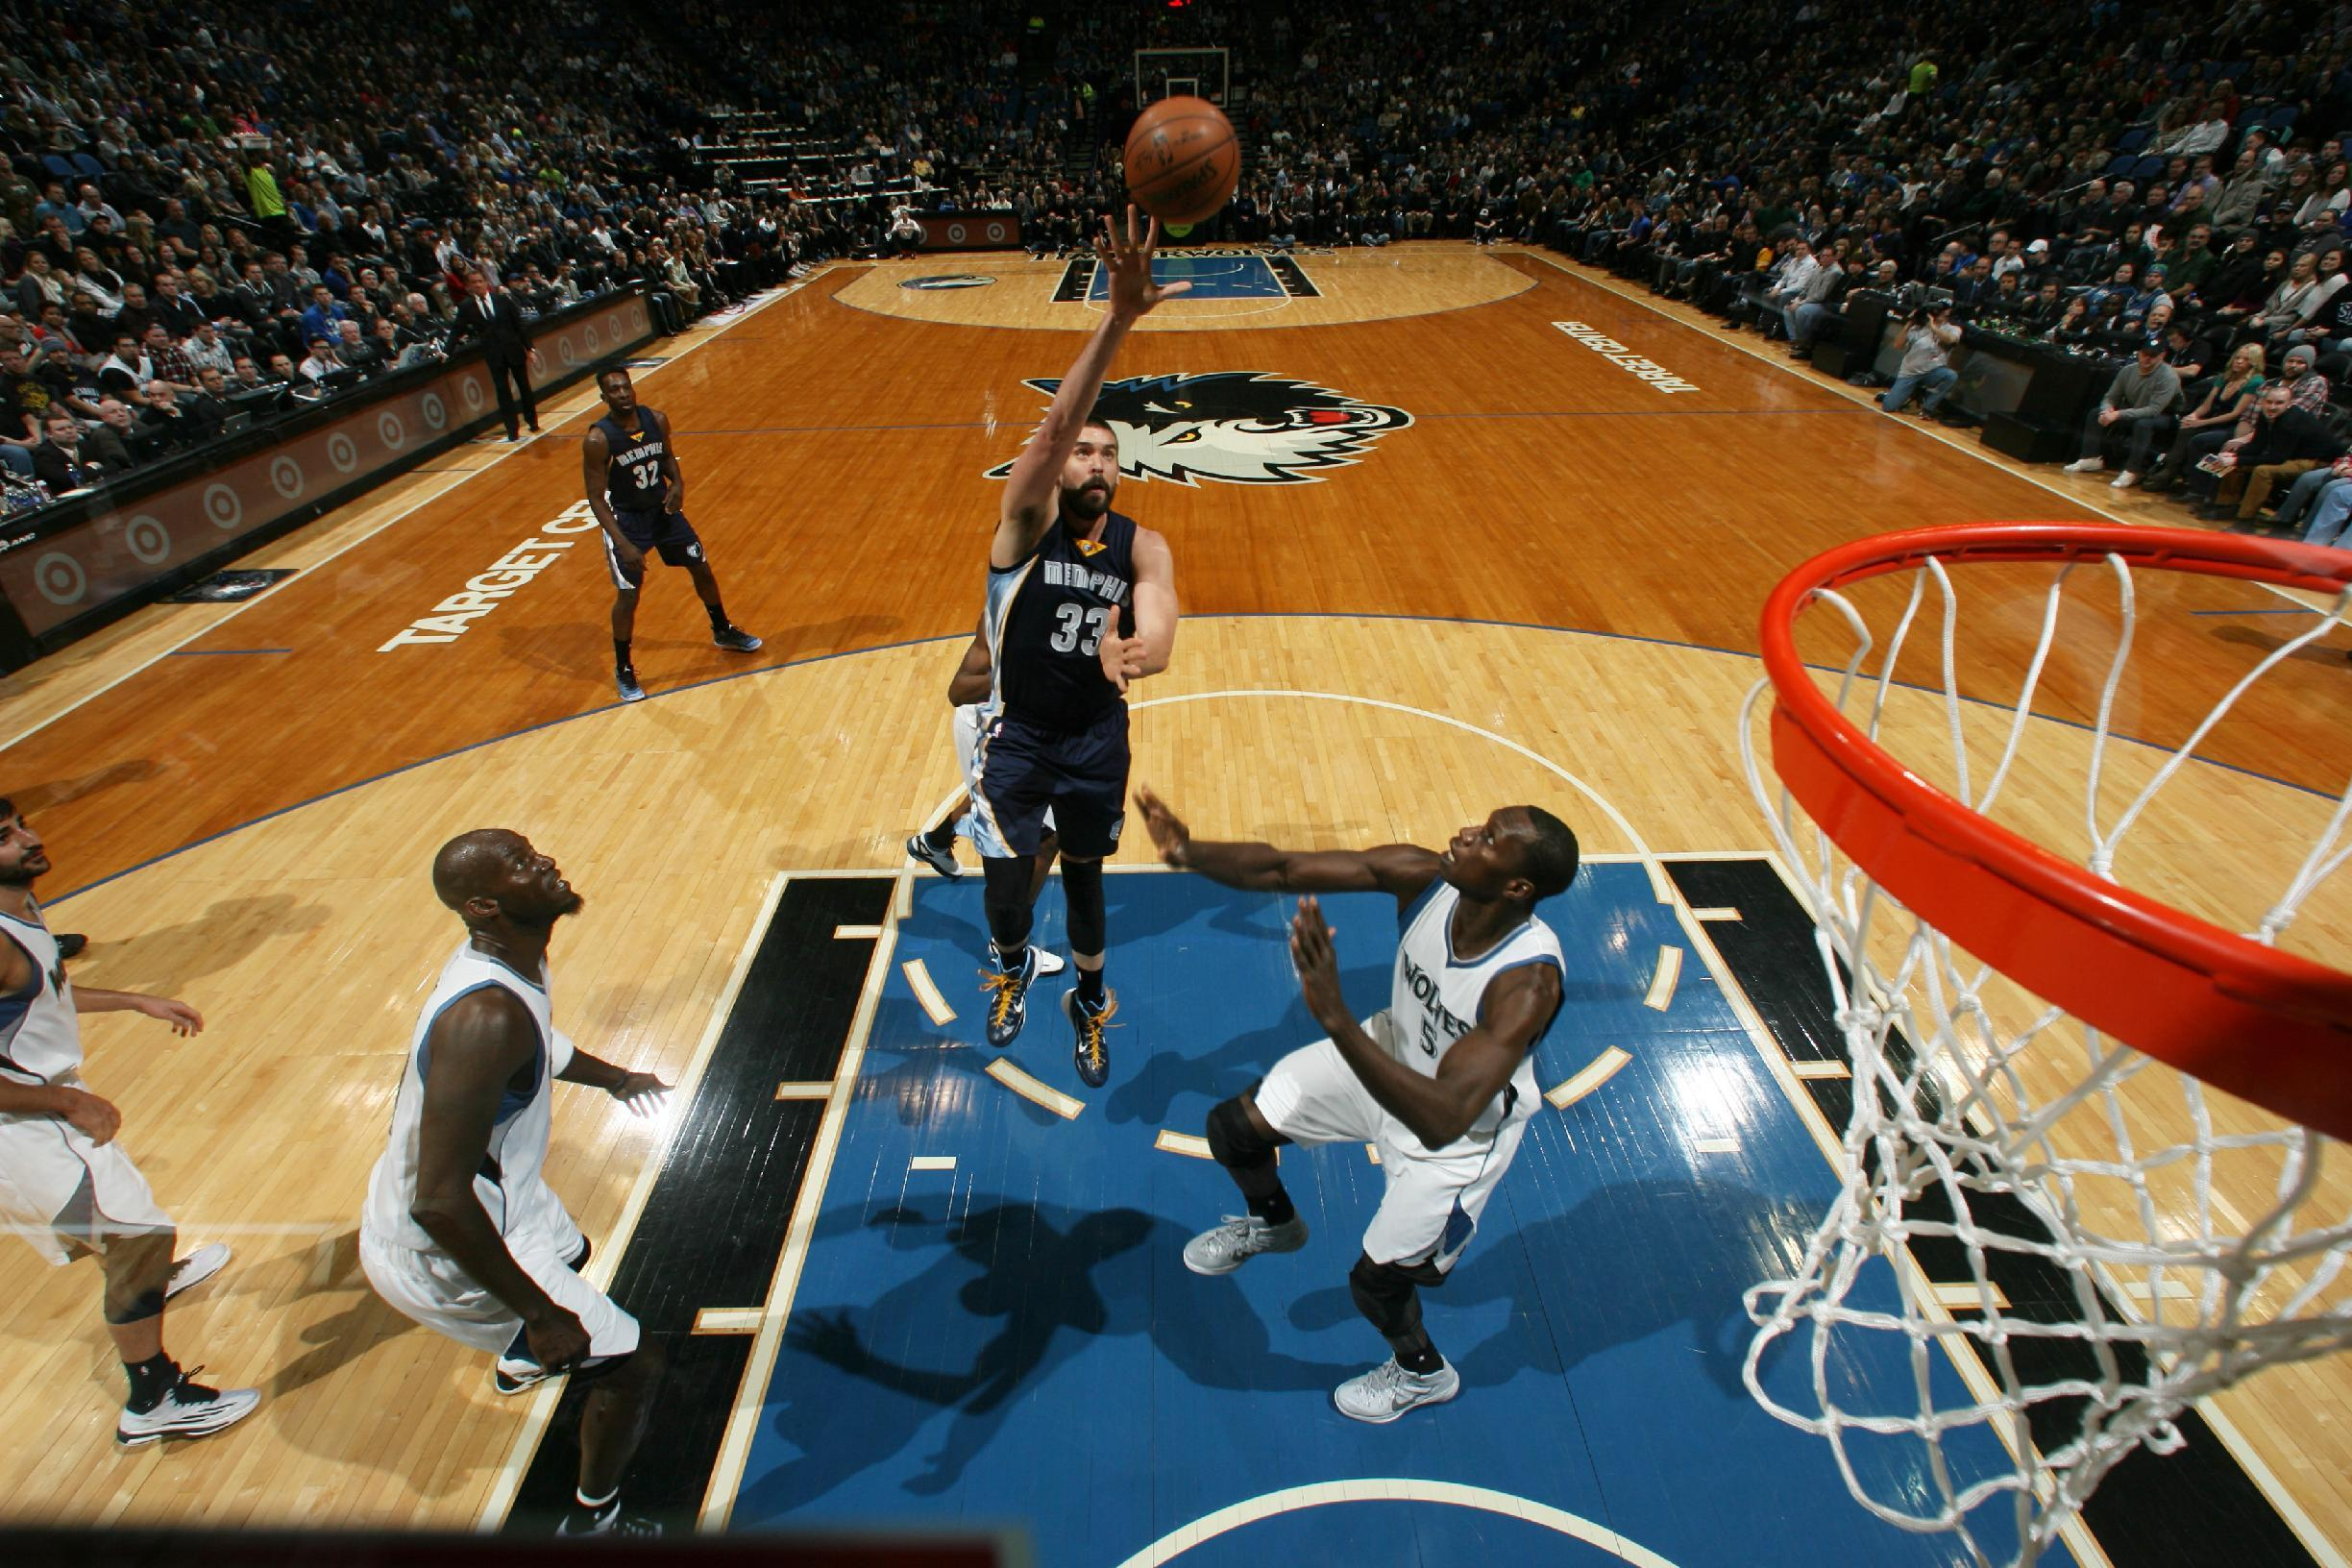 How Much Are Nba Final Tickets 2015 | All Basketball Scores Info